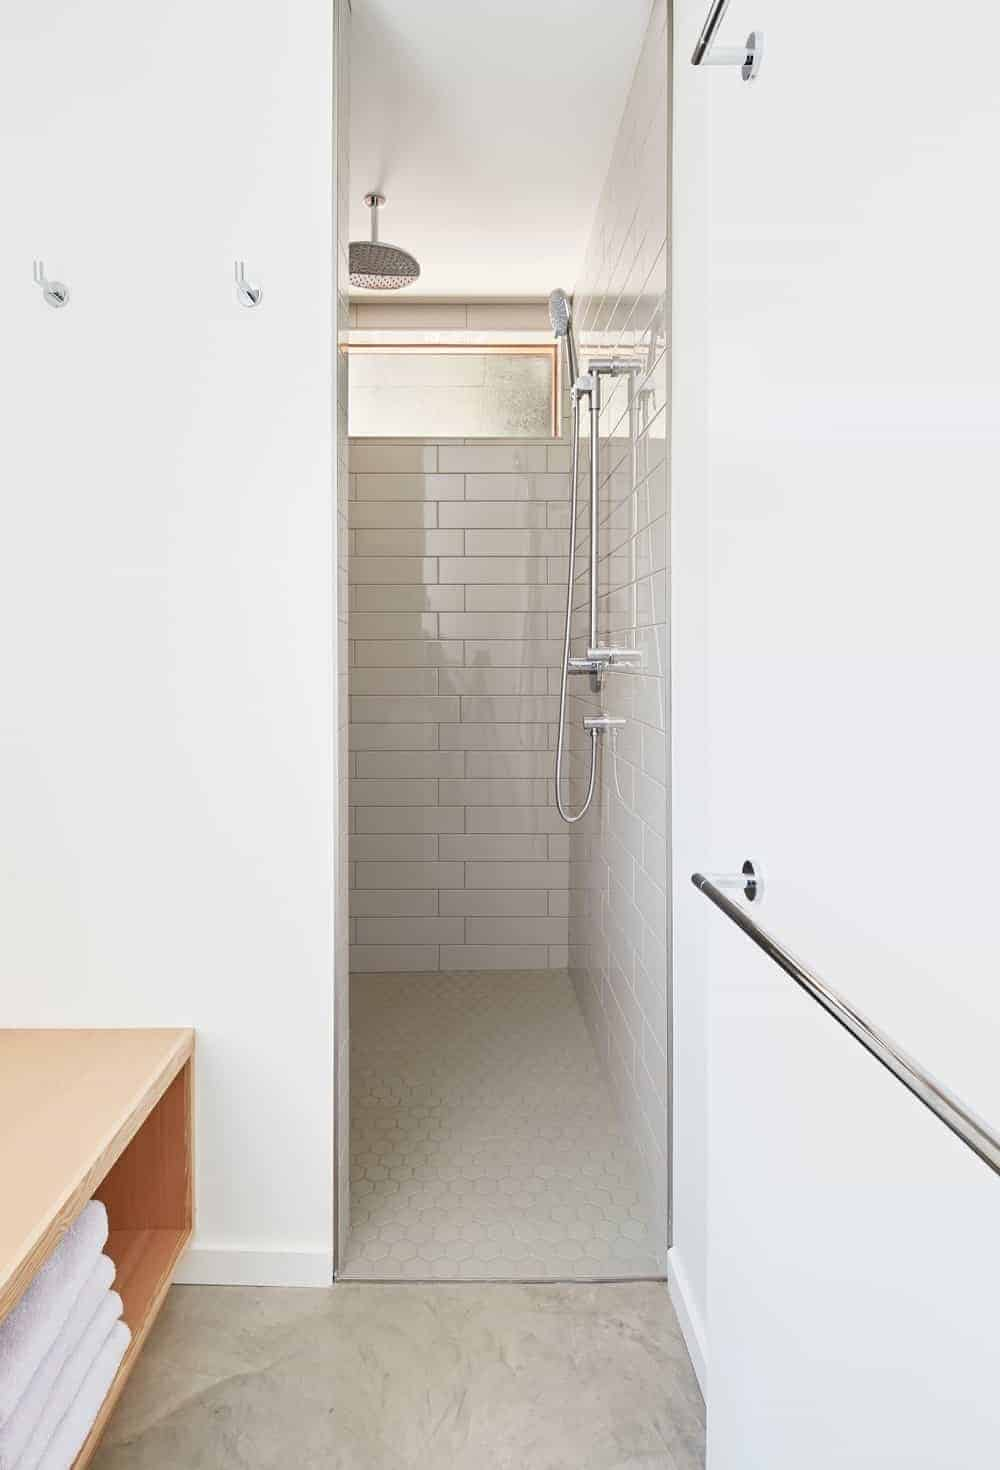 White bathroom showcases a wooden shelf and a walk-in shower with white subway tile walls and hex flooring.